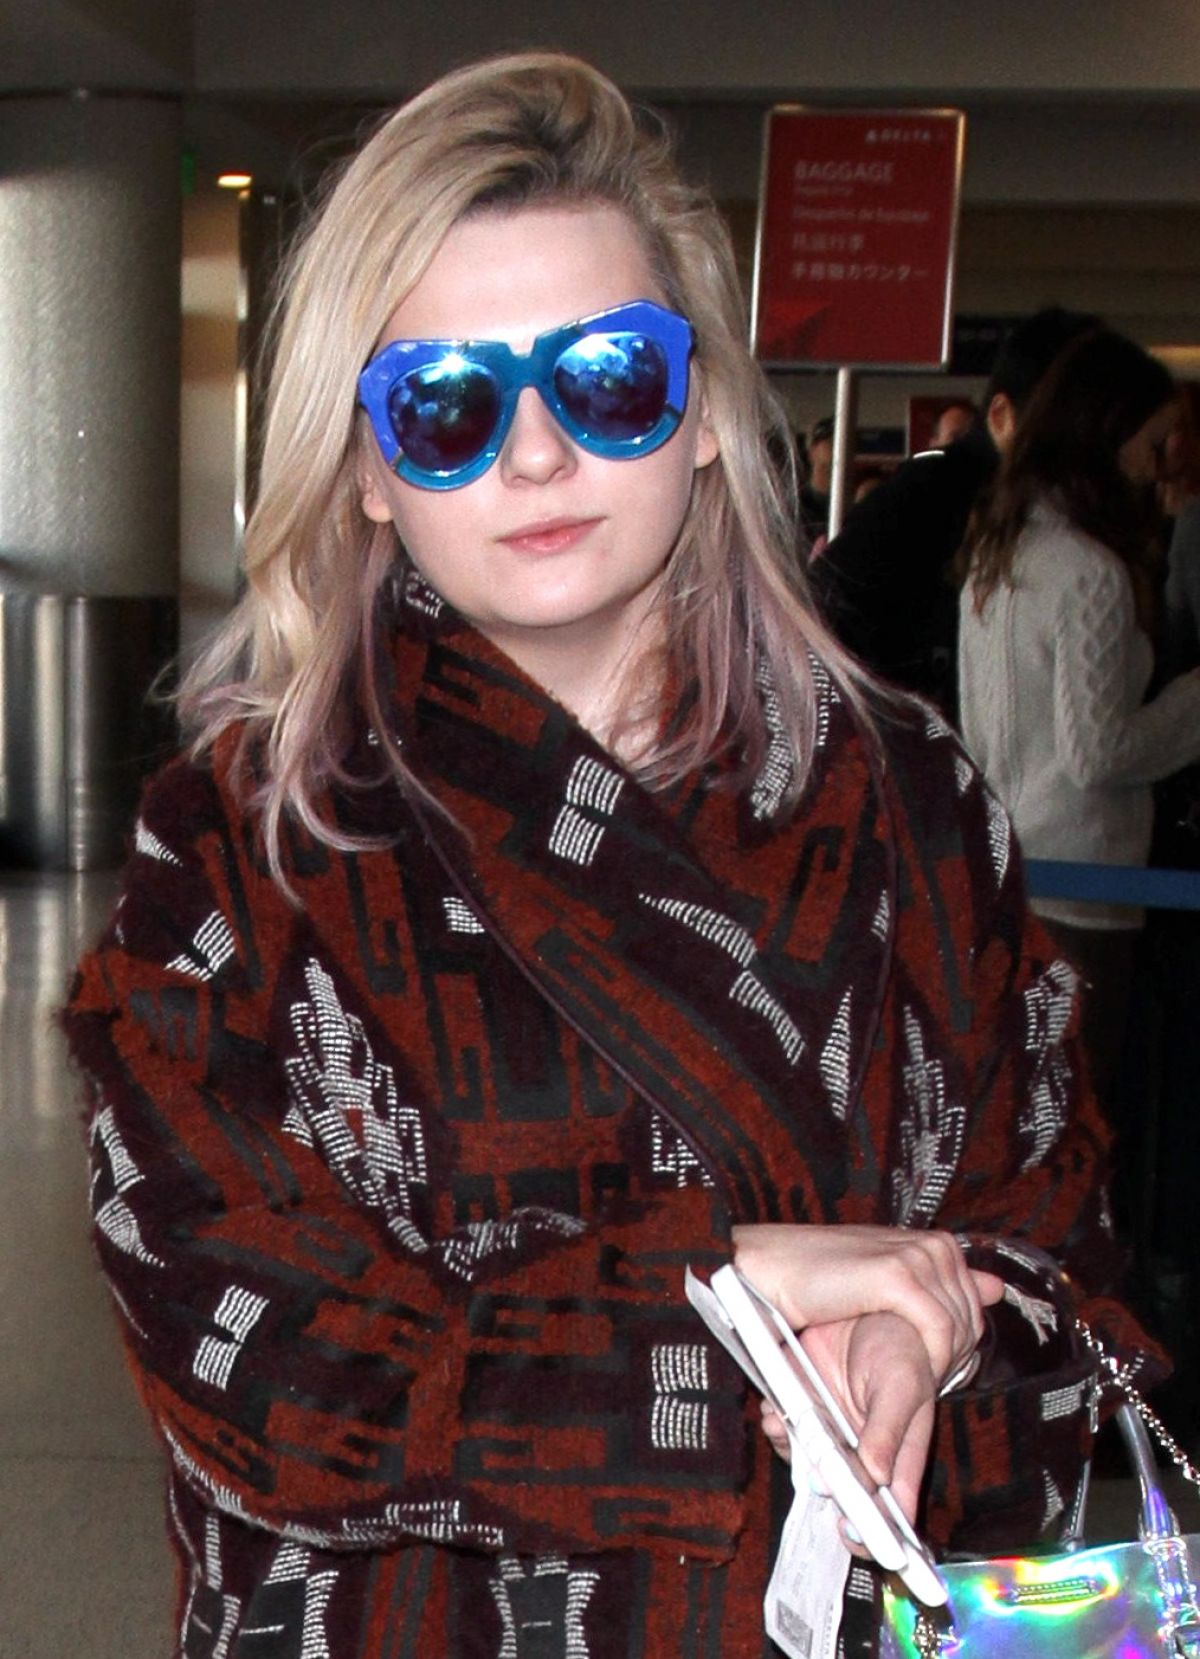 ABIGAIL BRESLIN at LAX Airport in Los Angeles 01/22/2016